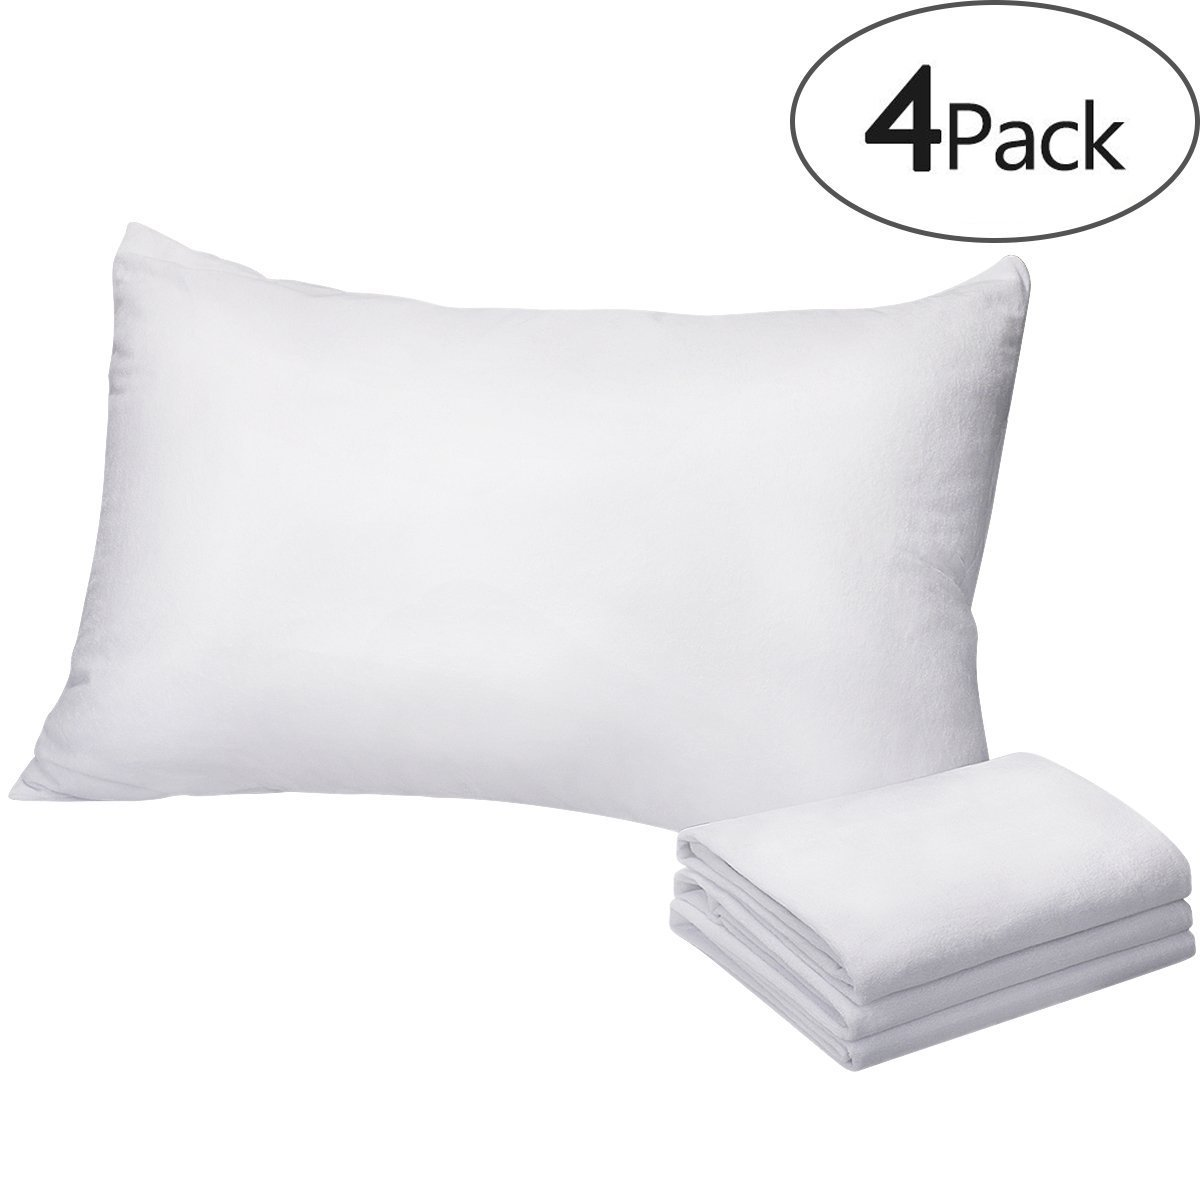 HOMEIDEAS 4-Pack Pillow Protectors, 100% Waterproof,Breathable Hypoallergenic Vinyl Free - Premium Zippered Cotton Terry Covers-King Size